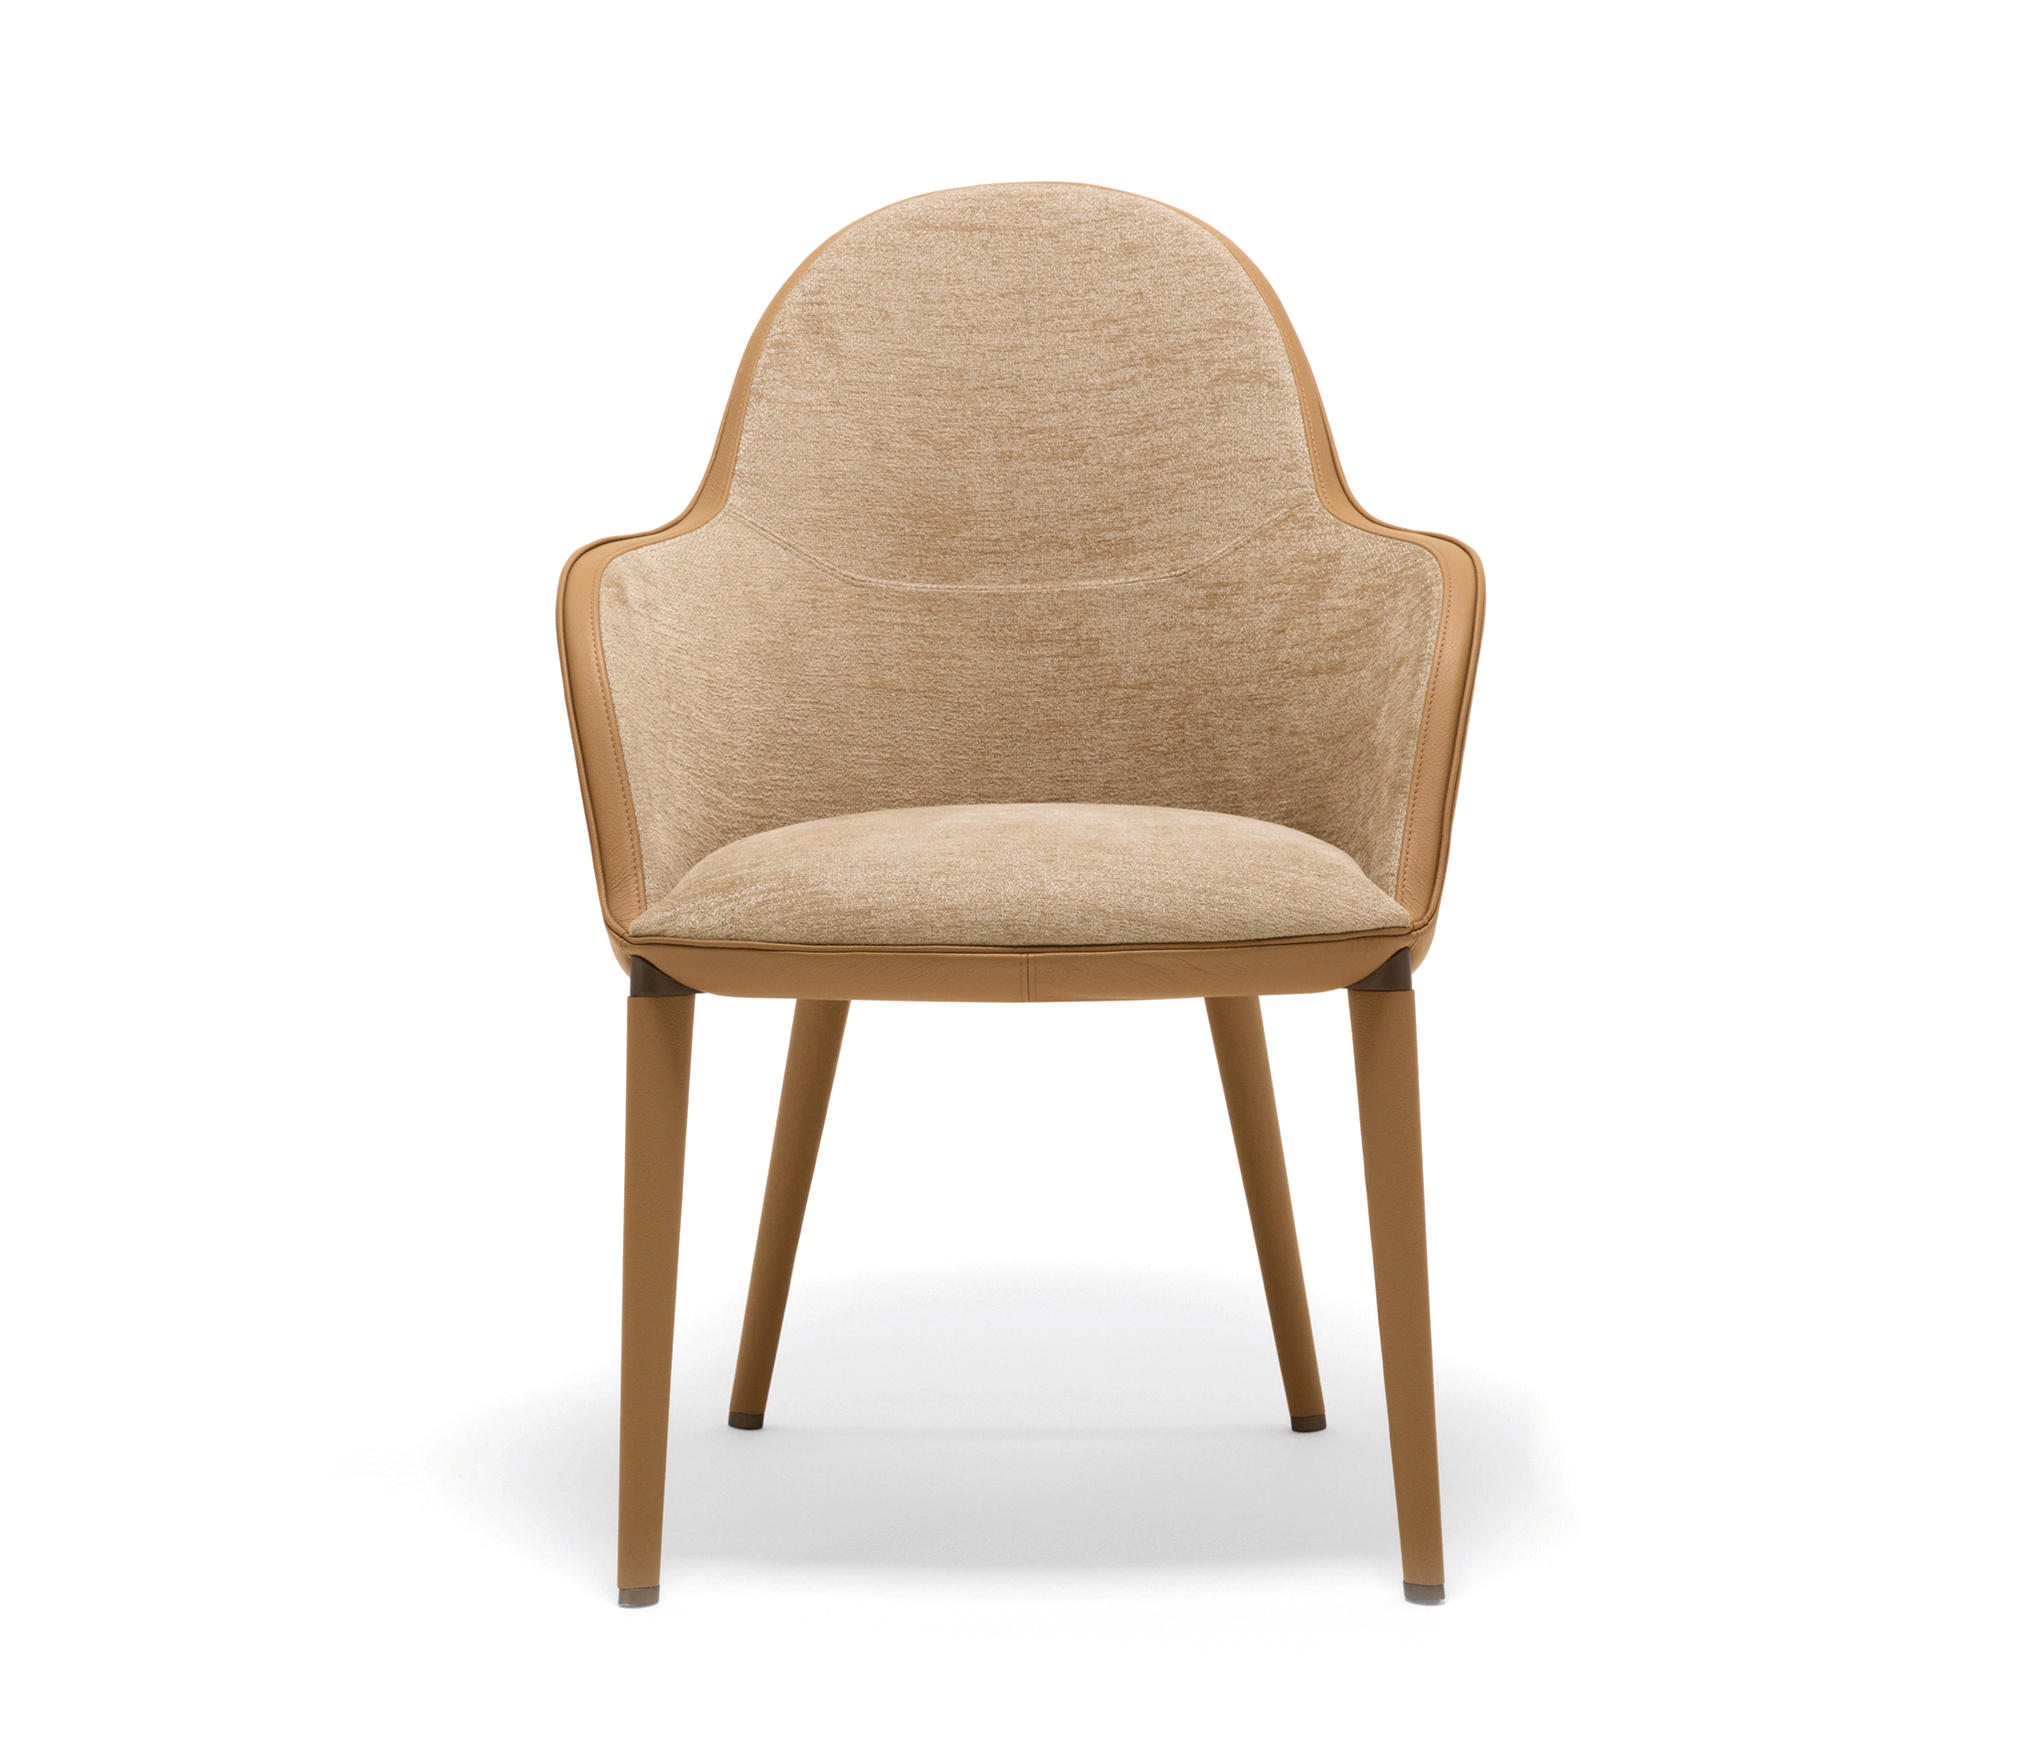 Selene small armchair visitors chairs side chairs from for Small side chair